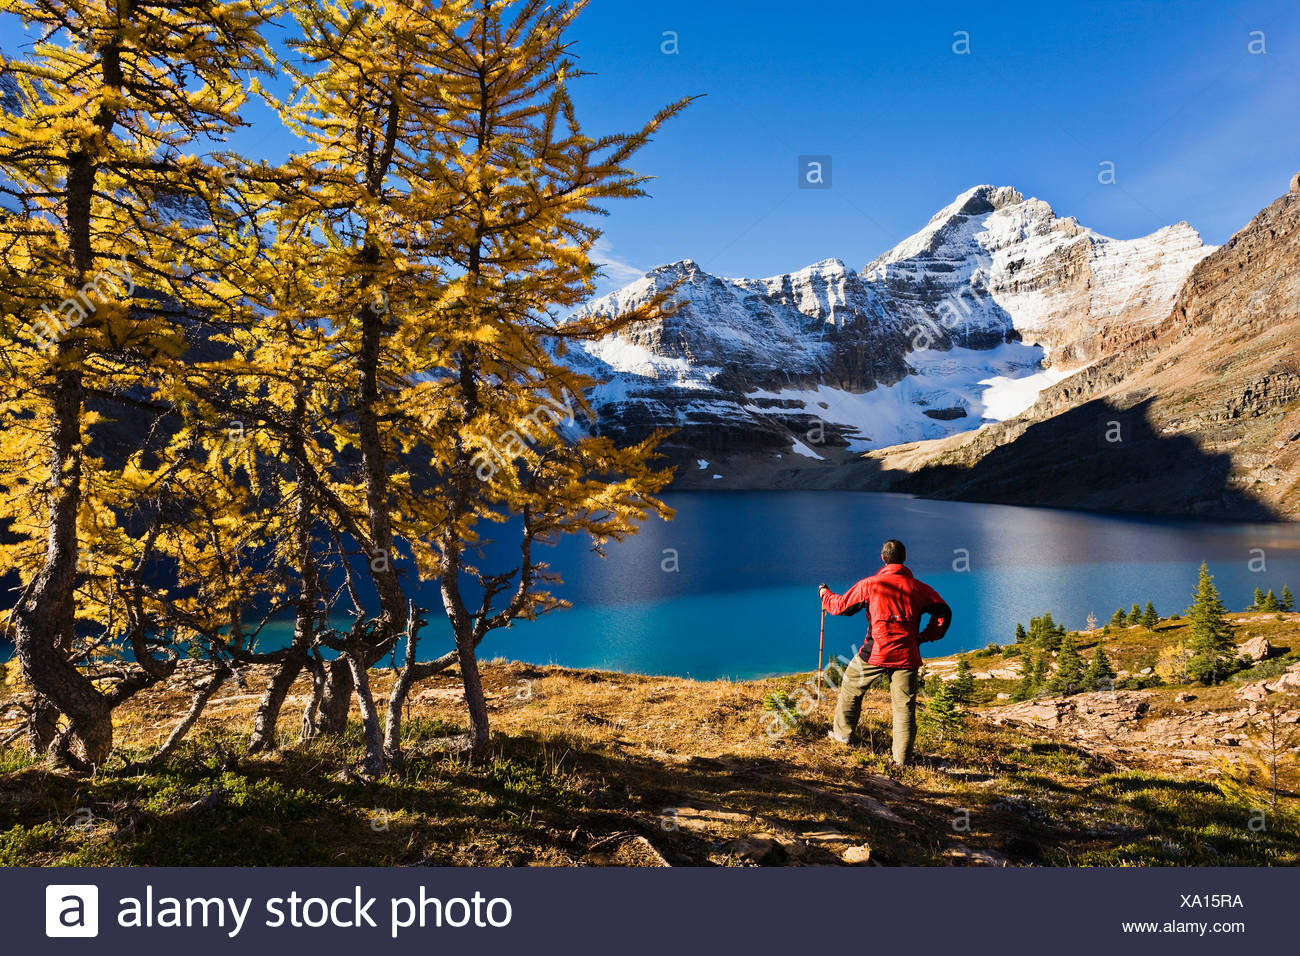 Hiker overlooking Lake McArthur and Mount Biddle, Yoho National Park, British Columbia - Stock Image